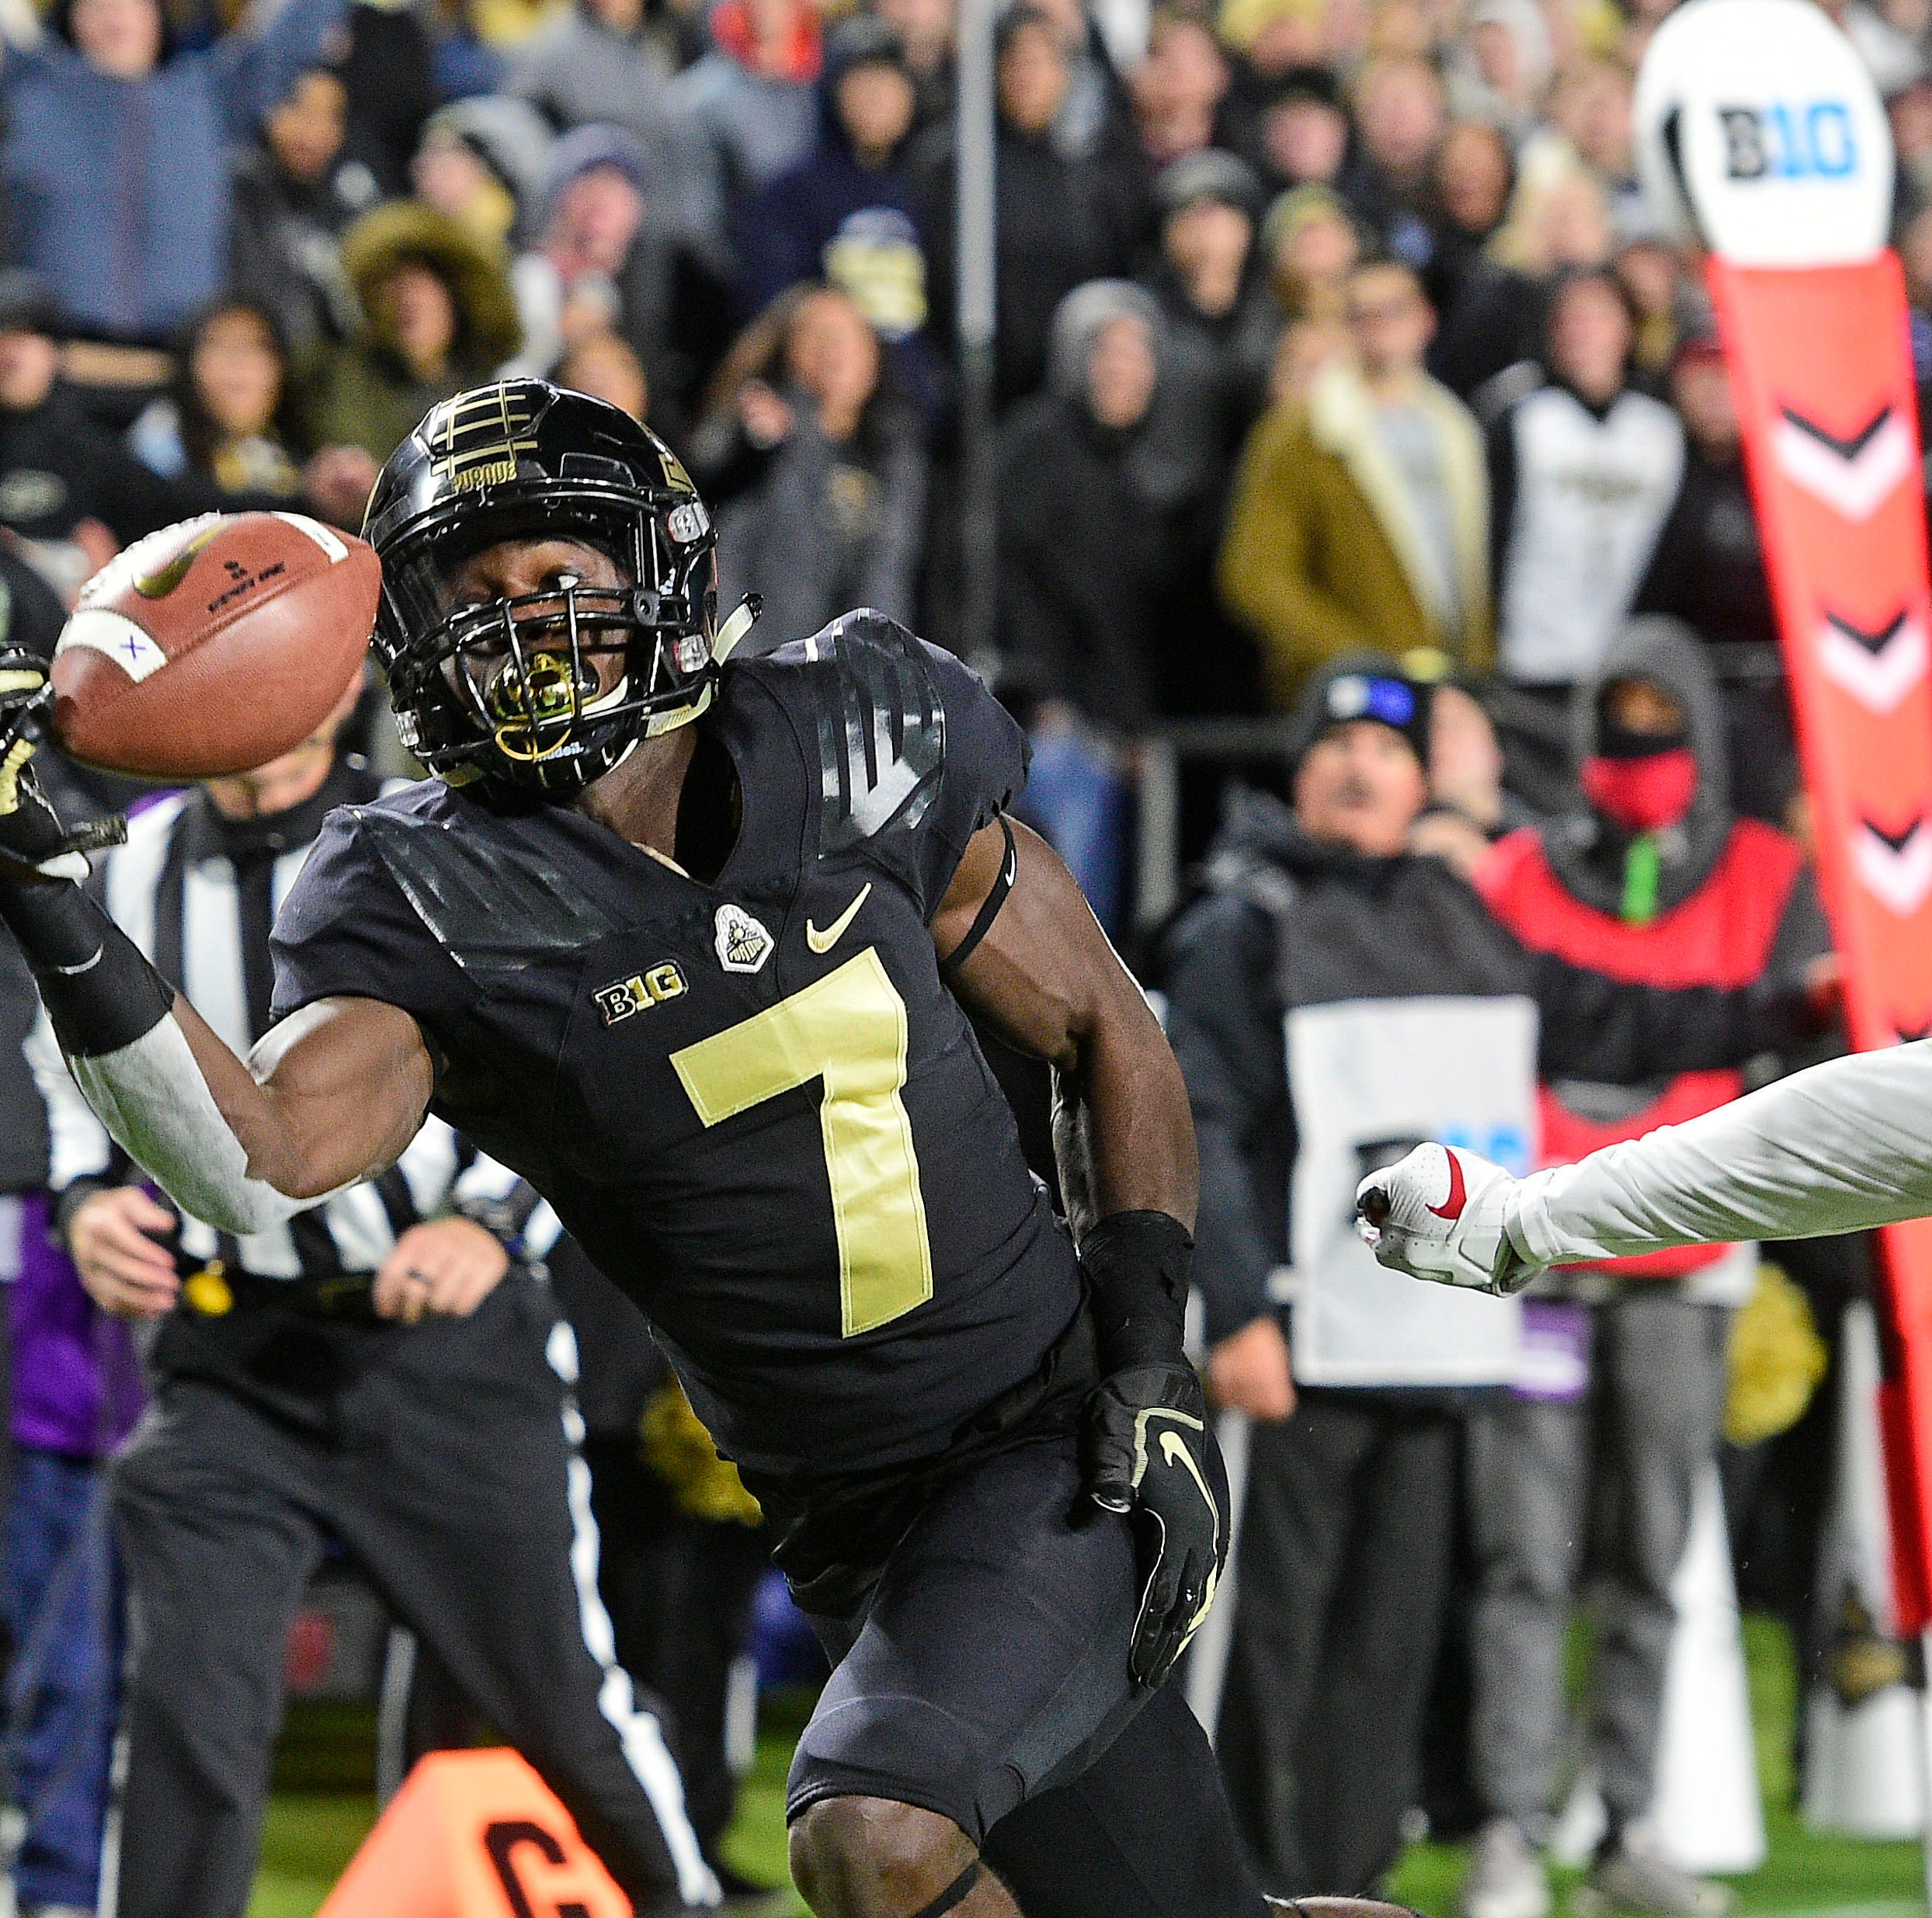 Purdue football 49, No. 2 Ohio State 20 | 5 takeaways